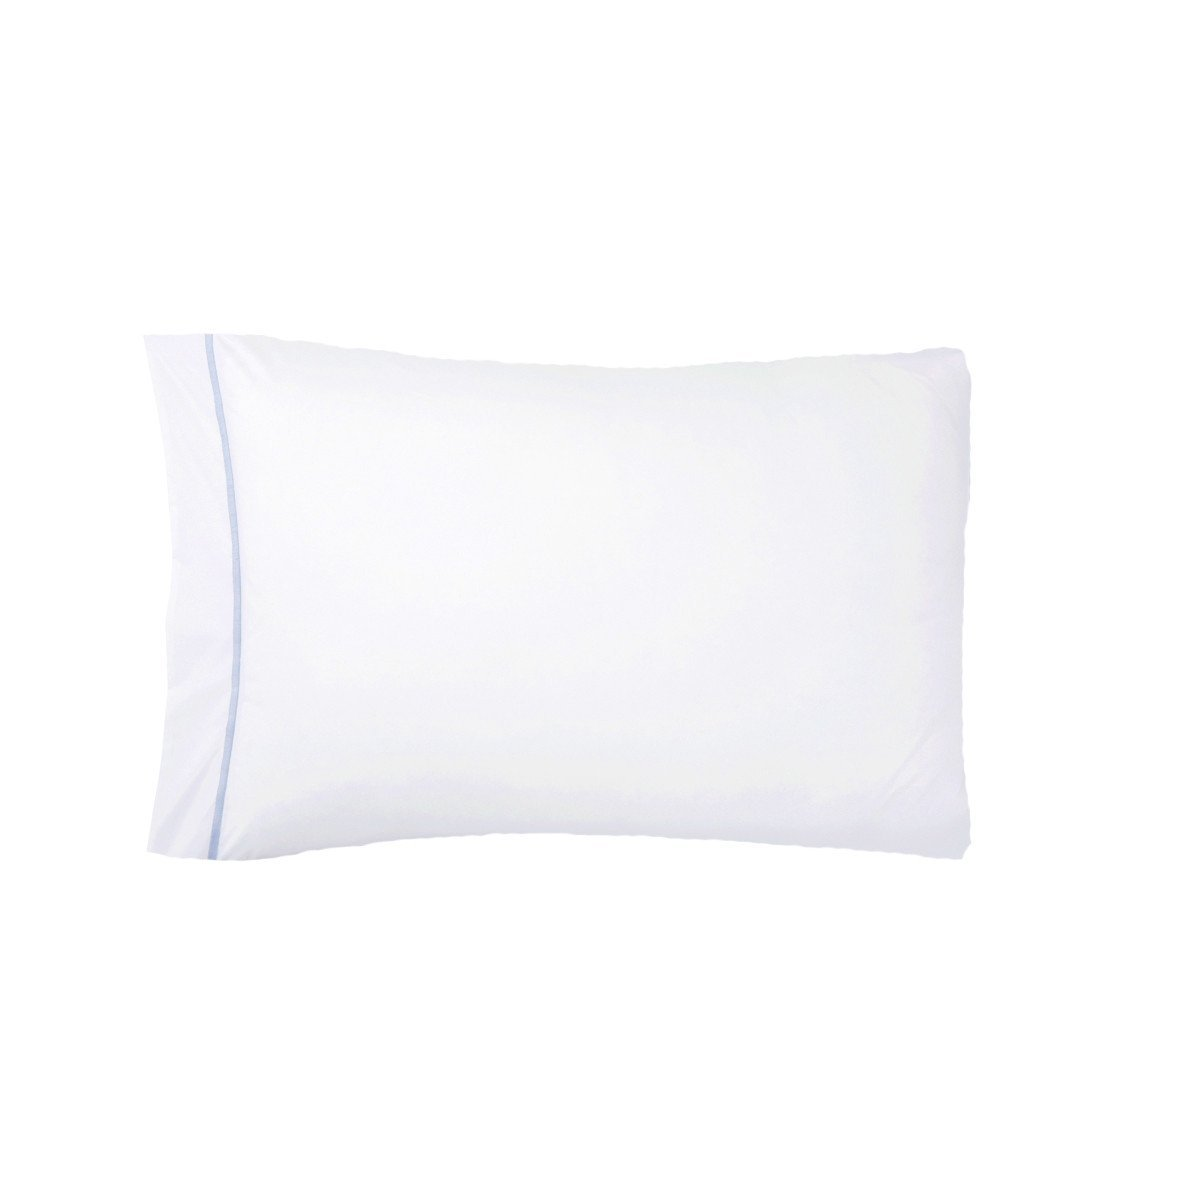 Athena Opalia Bedding Collection by Yves Delorme | Fig Linens - white pillowcase